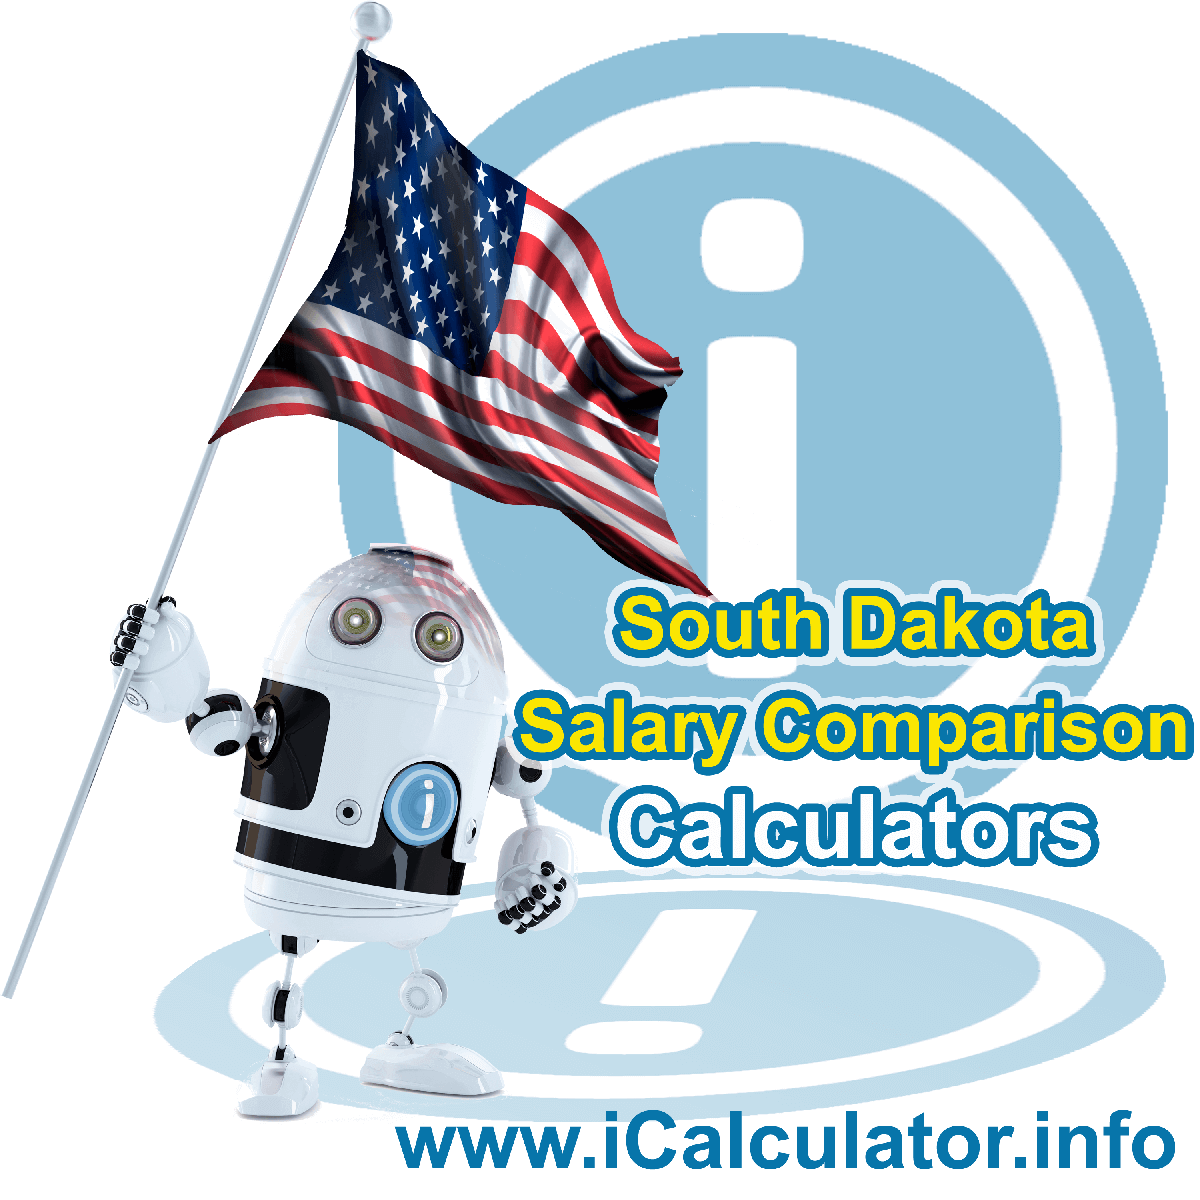 South Dakota Salary Comparison Calculator 2020 | iCalculator | The South Dakota Salary Comparison Calculator allows you to quickly calculate and compare upto 6 salaries in South Dakota or between other states for the 2020 tax year and historical tax years. Its an excellent tool for jobseekers, pay raise comparison and comparison of salaries between different US States